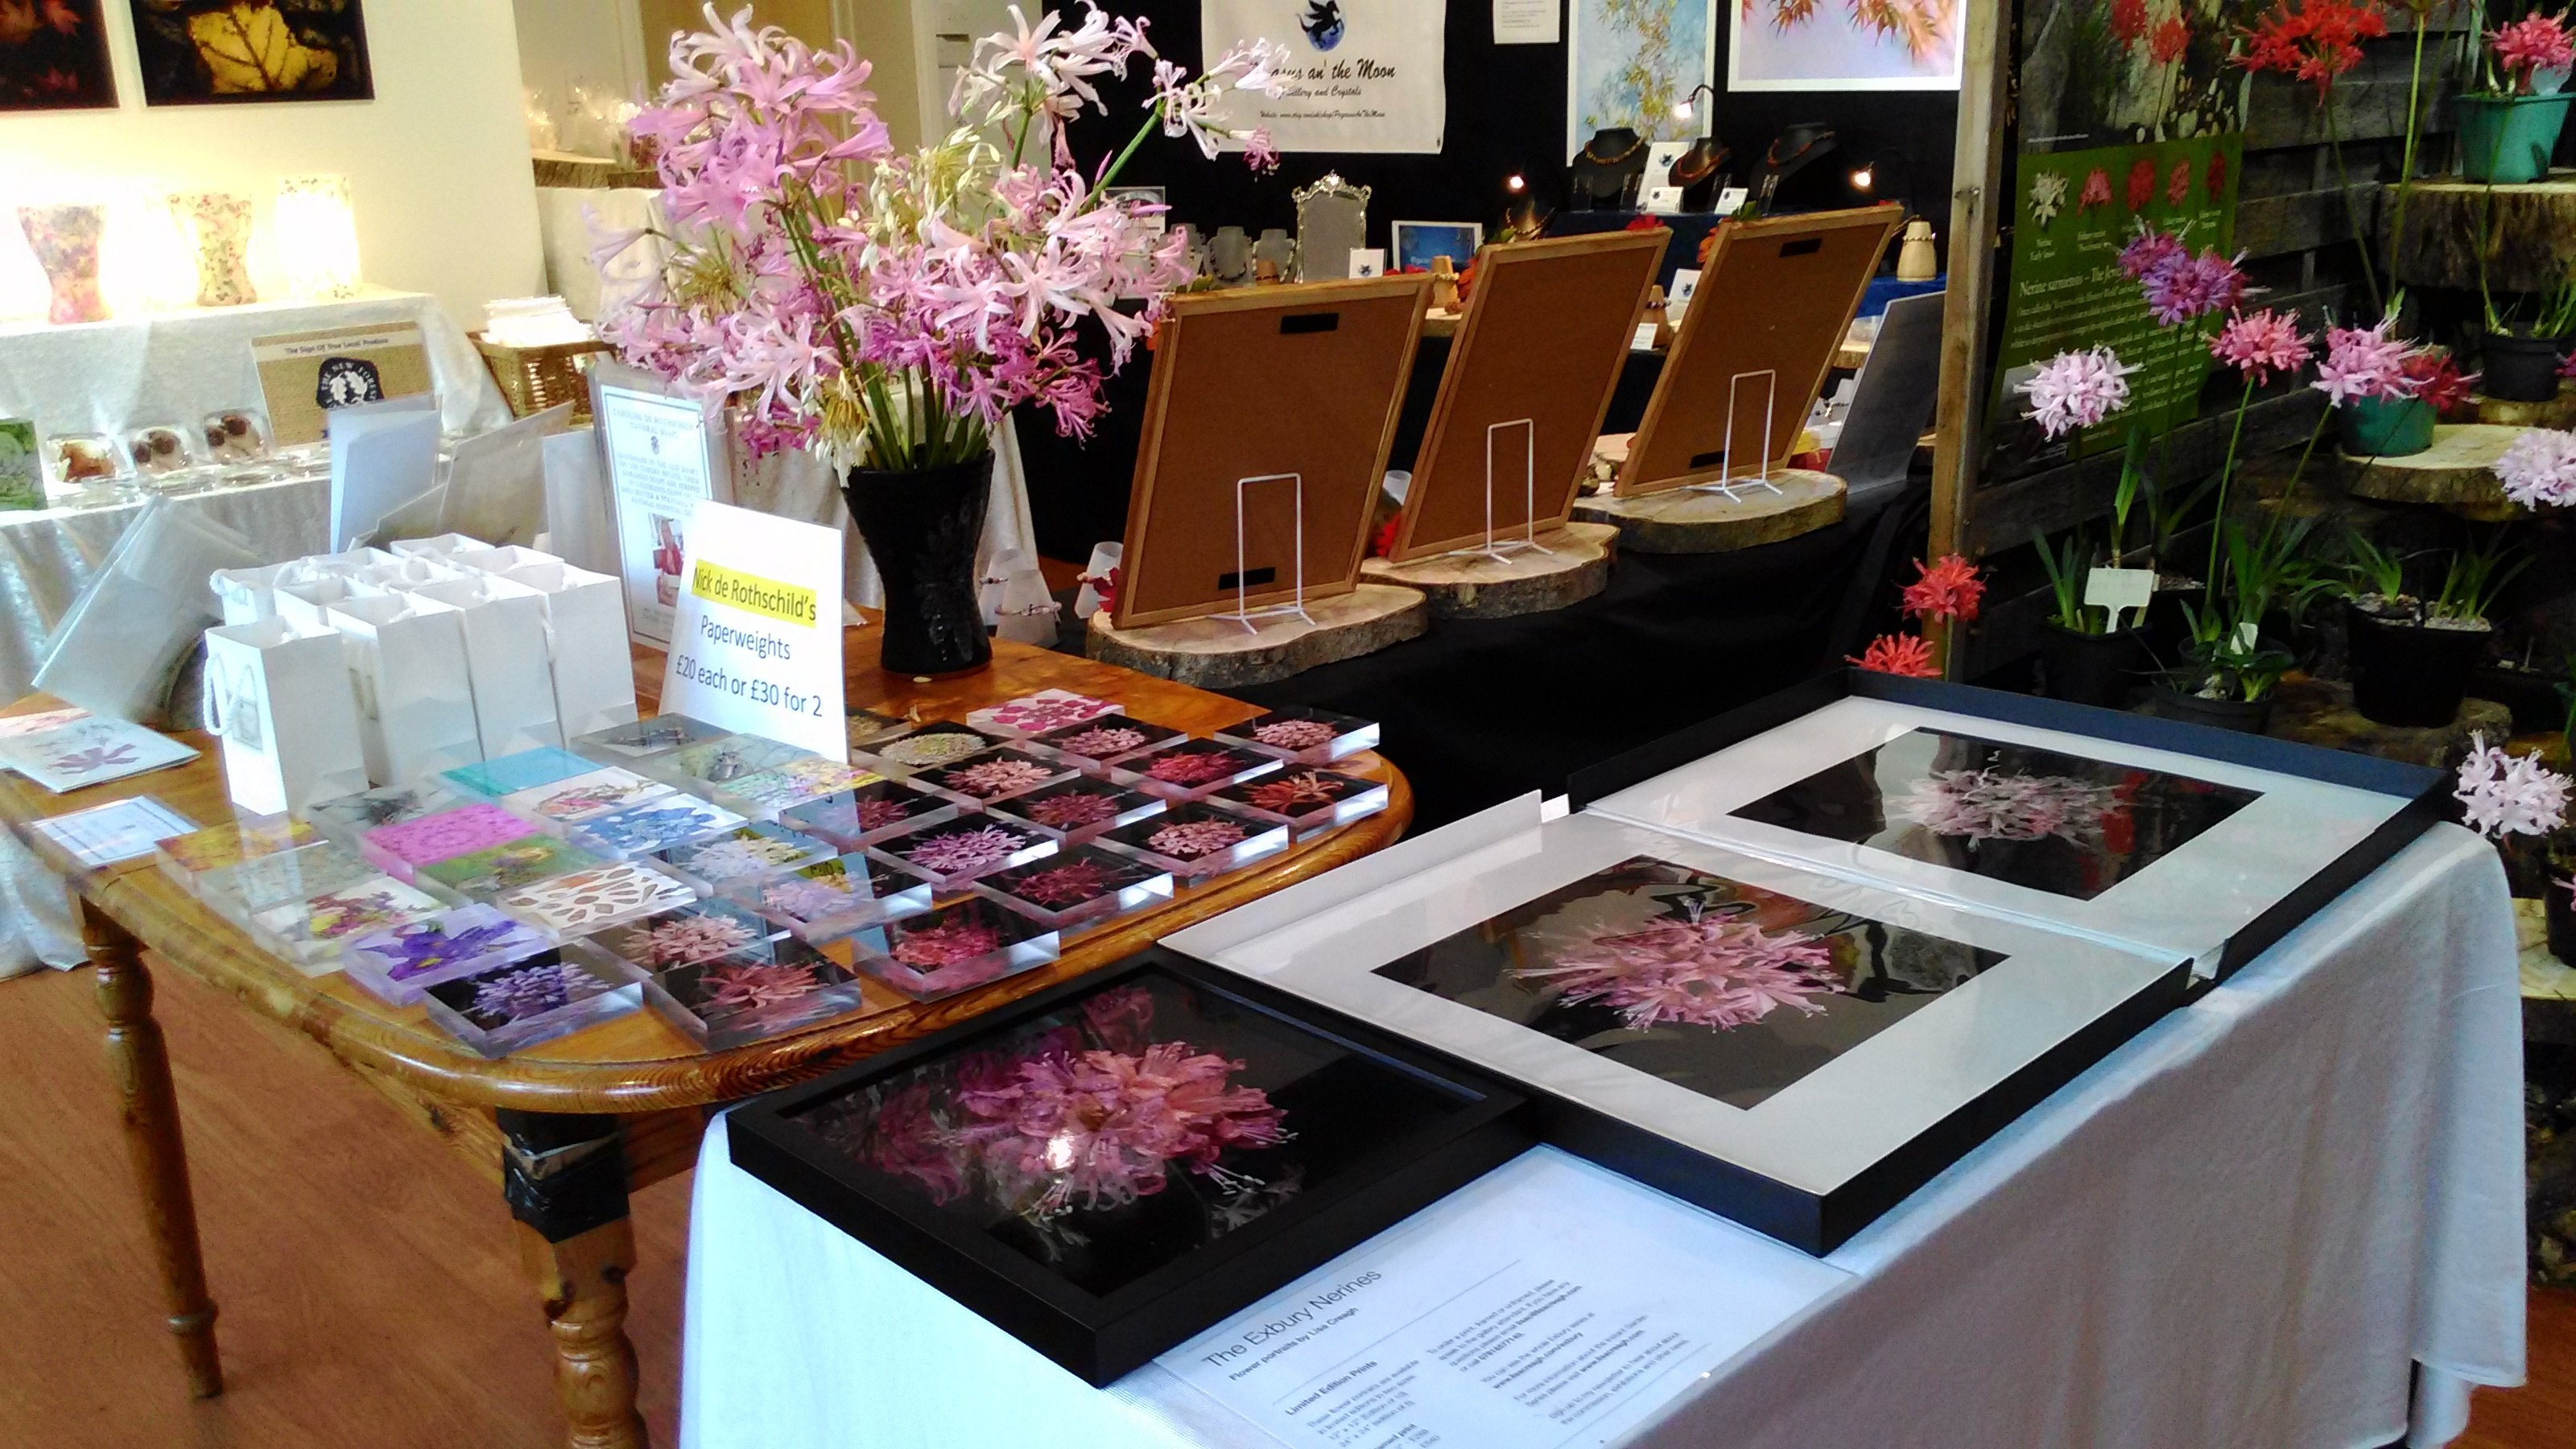 Pictures of Nerines and other related items available to purchase in the Gallery.